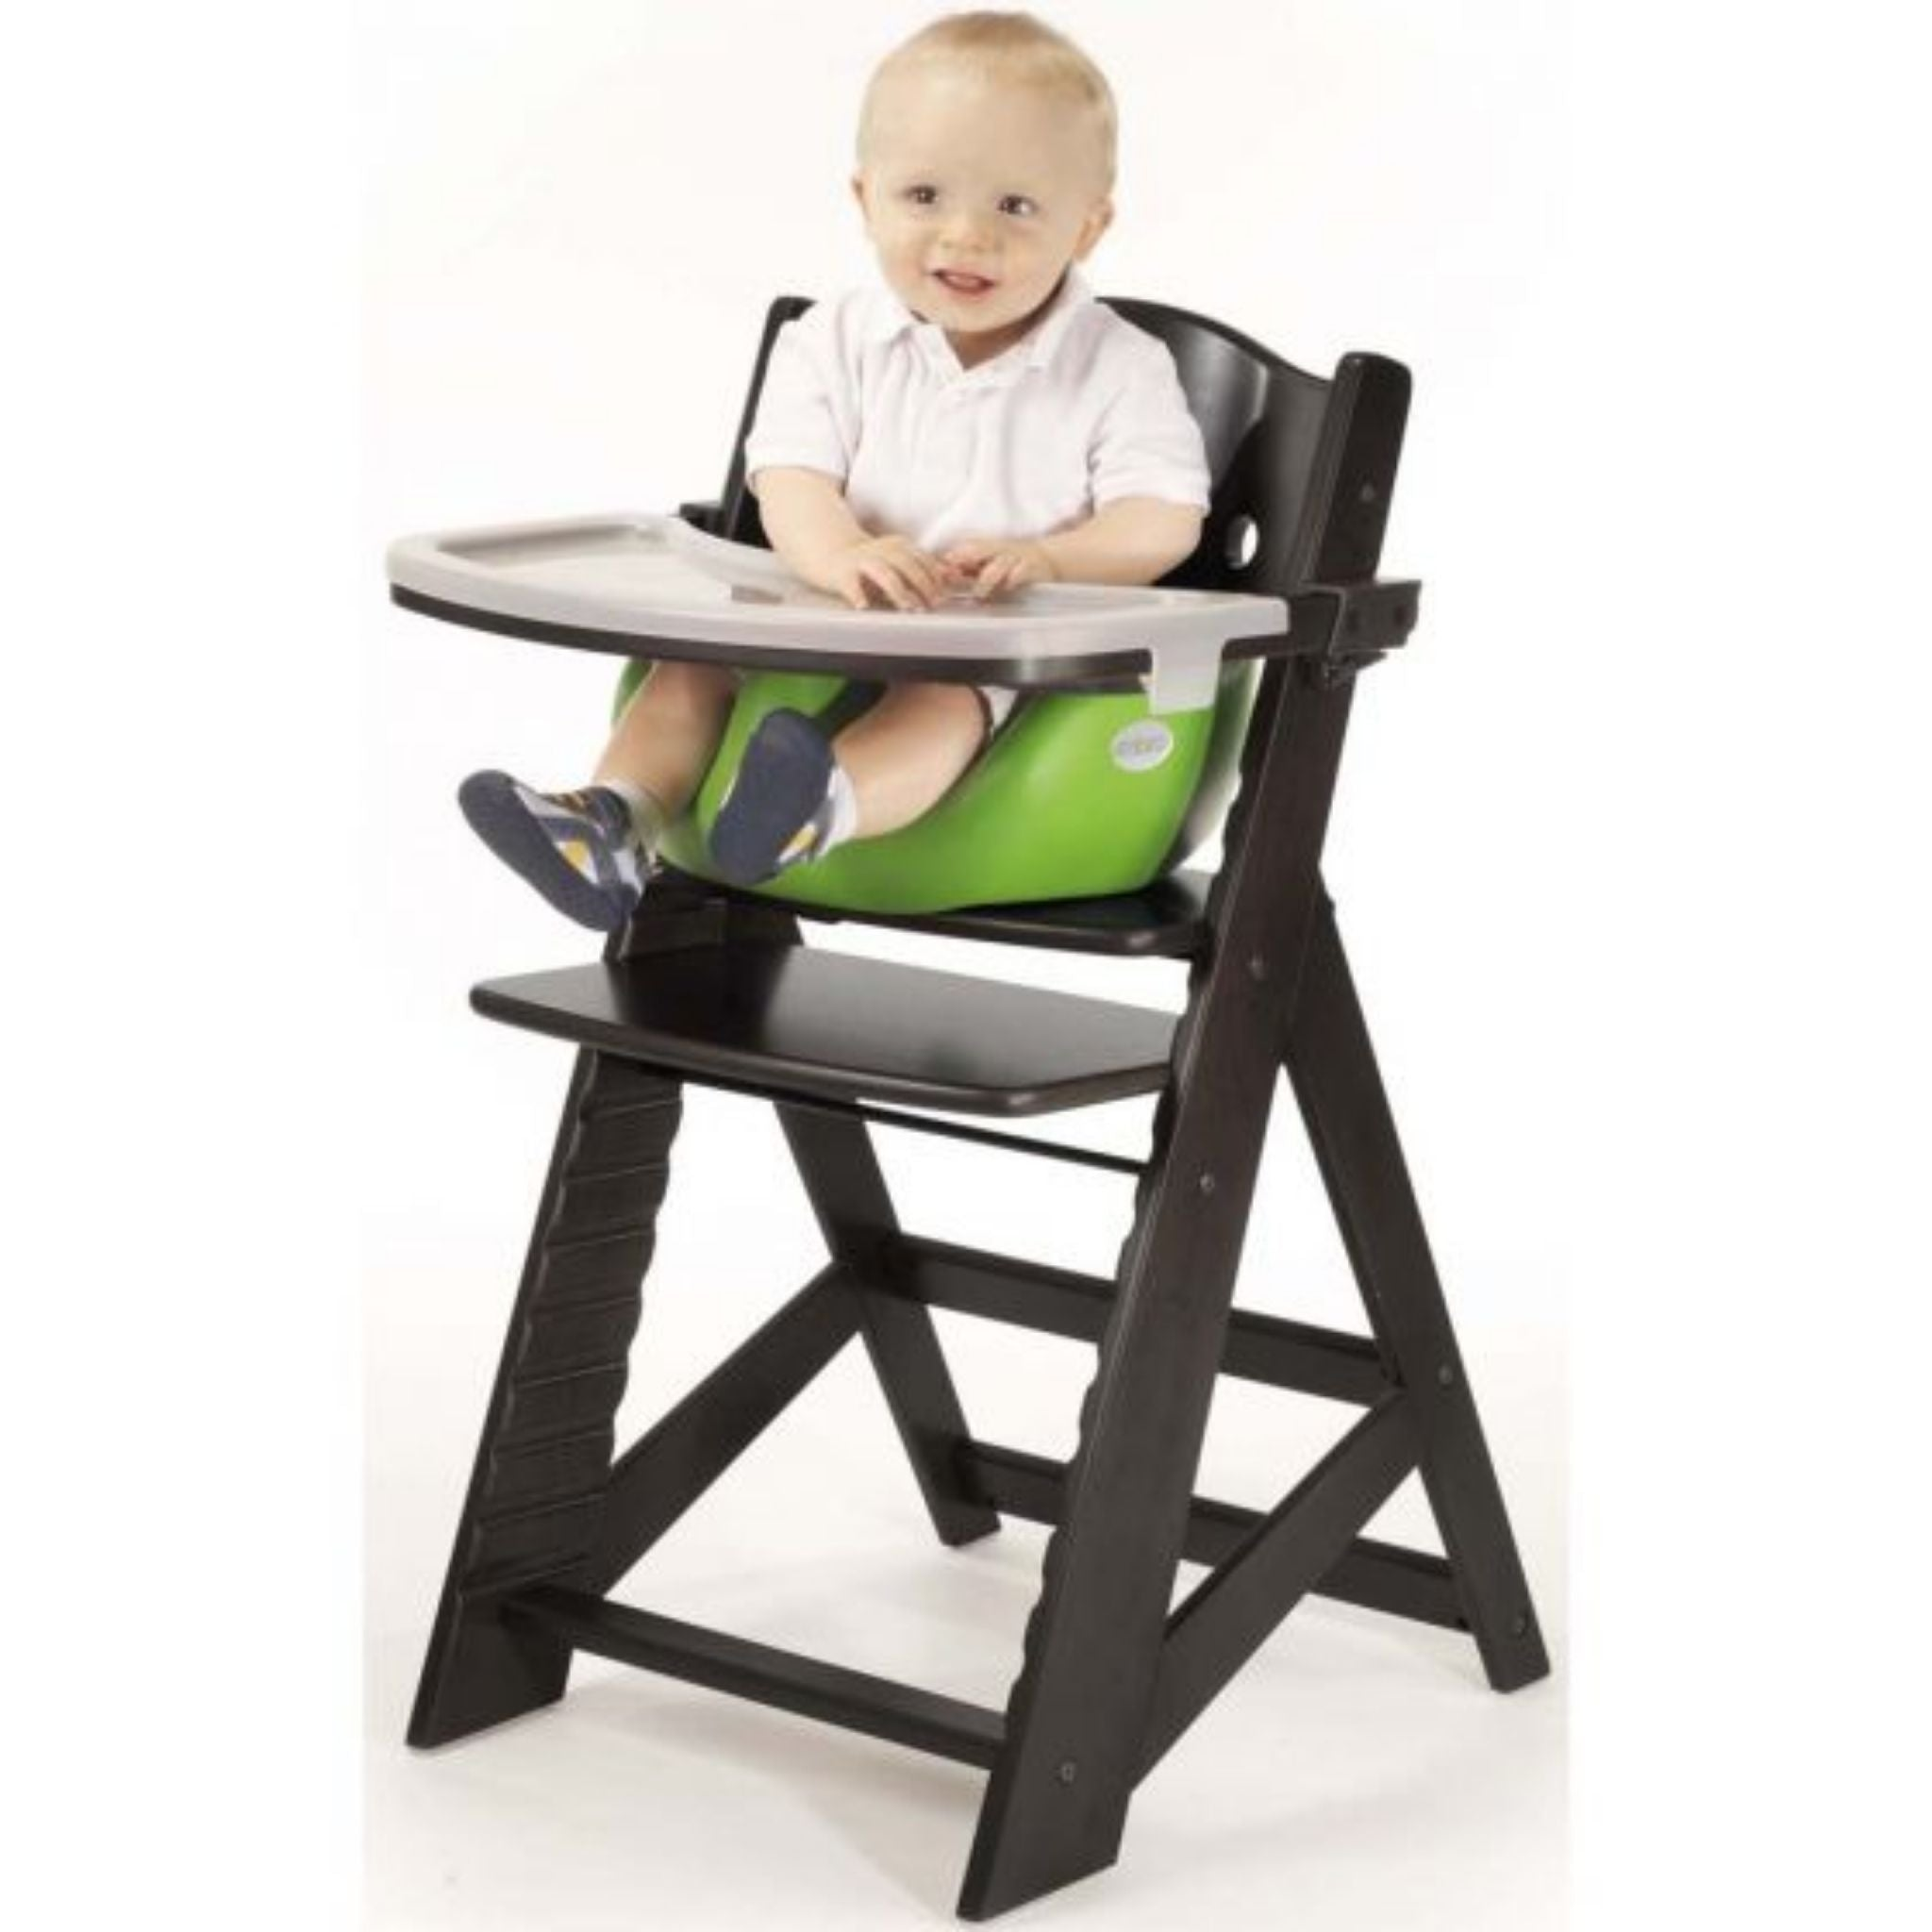 keekaroo adjustable high chair with infant insert and tray espresso black coloured wood chair lime bright green infant insert